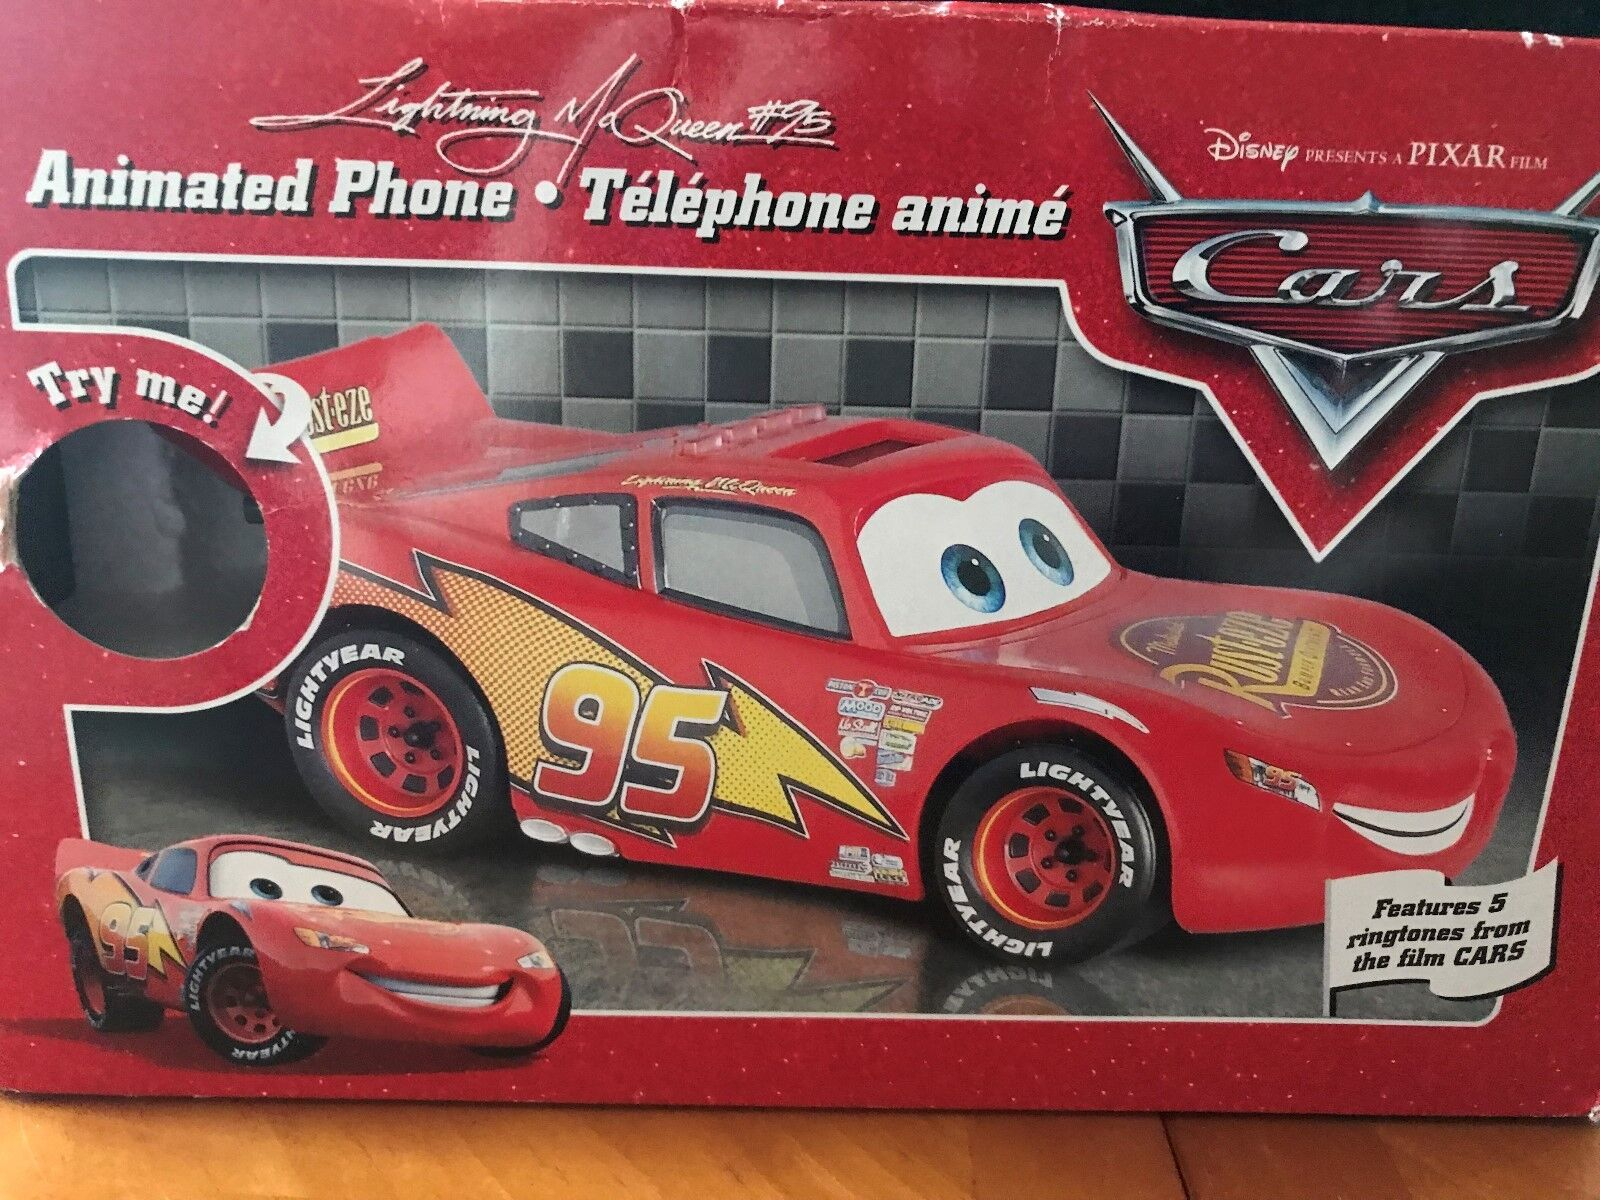 Lightning McQueen  Character two piece talking and animated phone